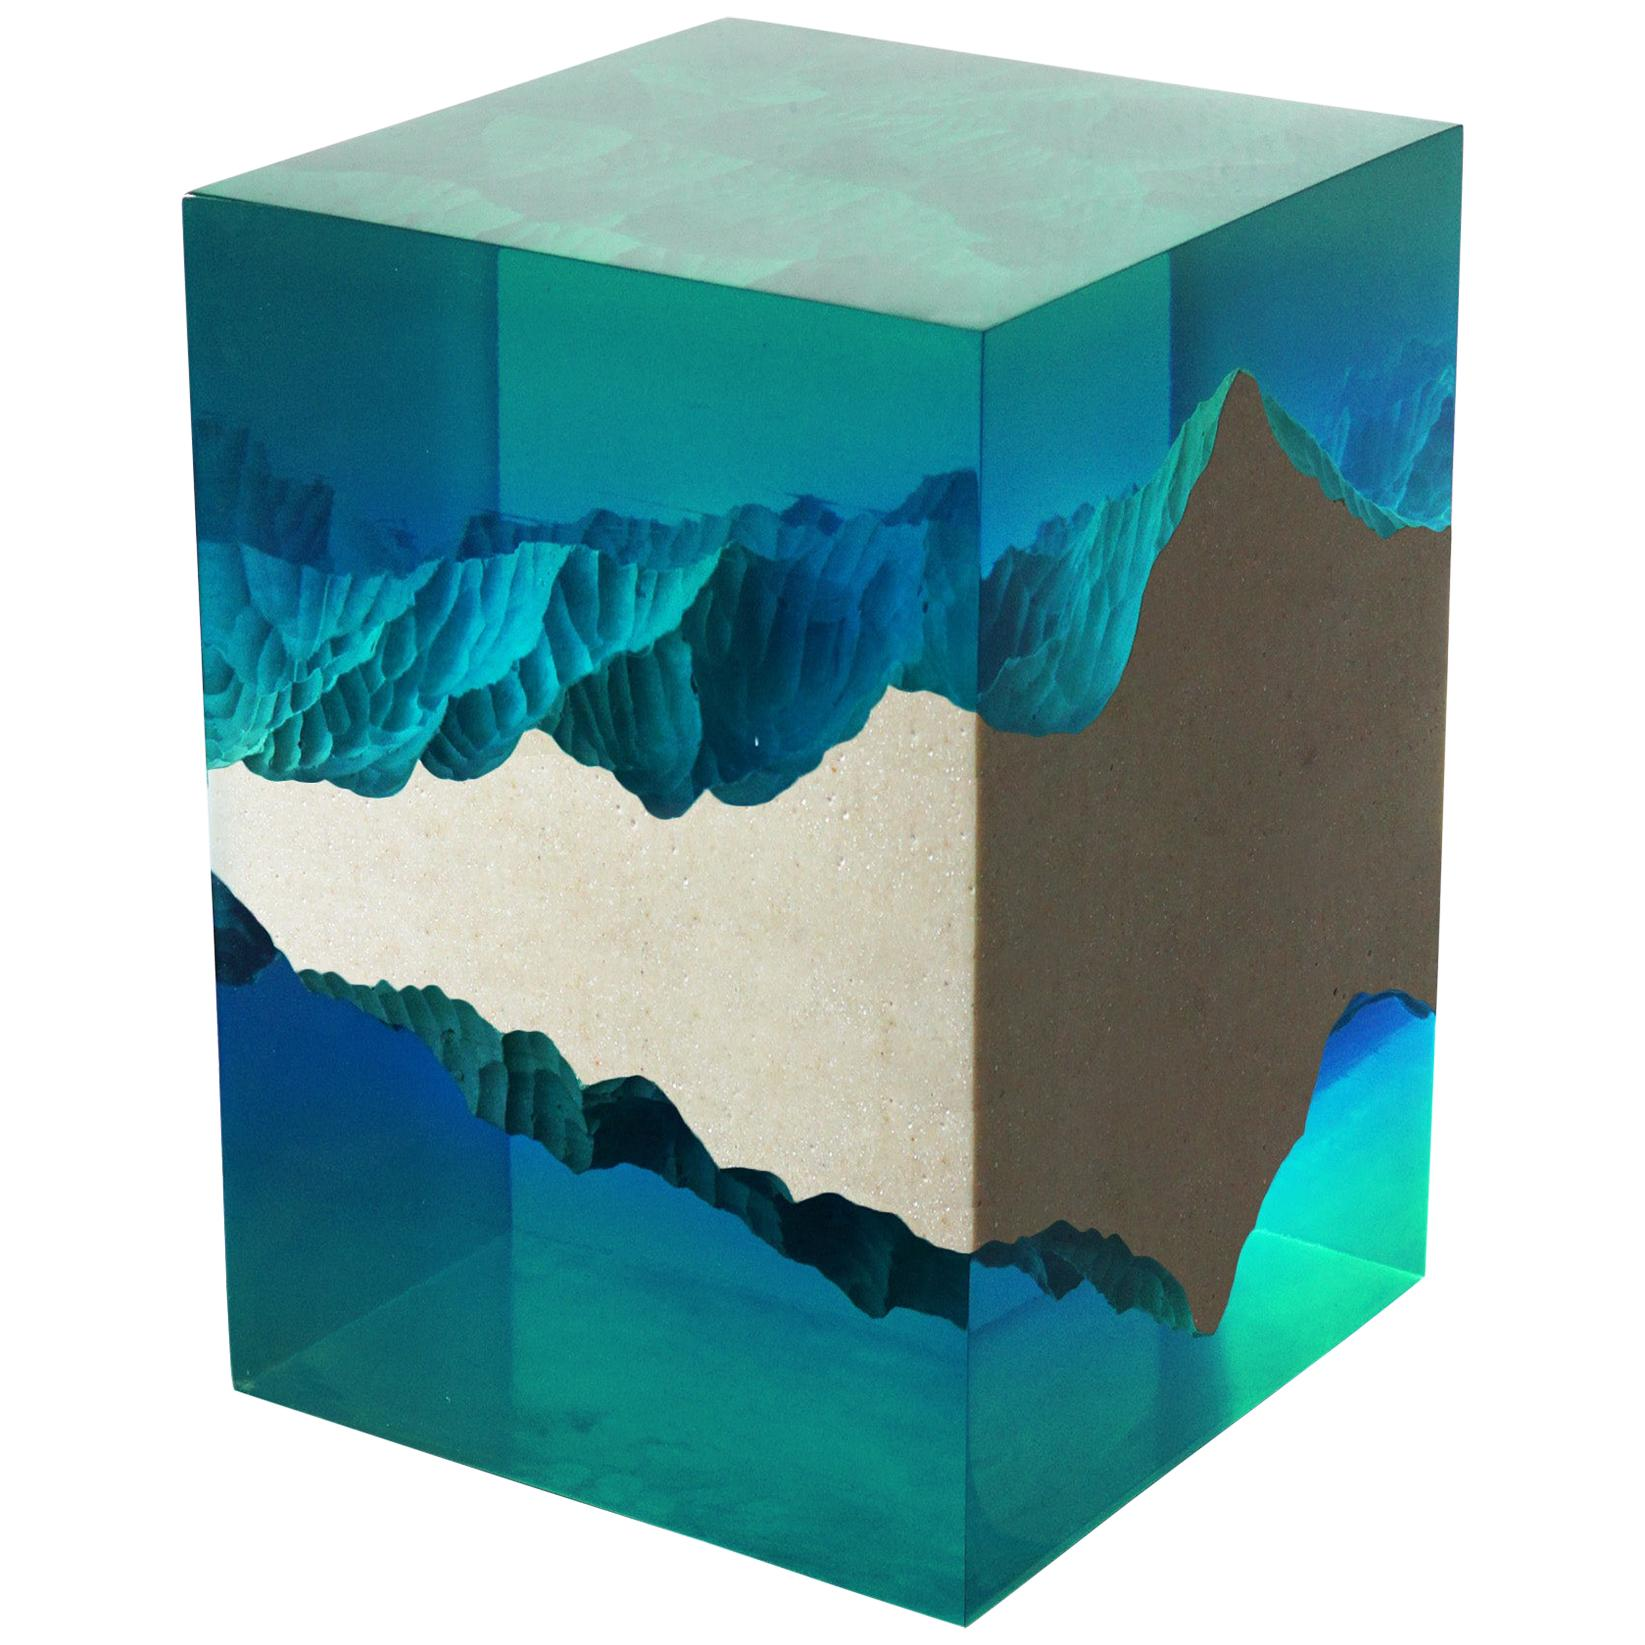 Mountain Side Table Stool by Eduard Locota, Acrylic Glass Contemporary Sculpture